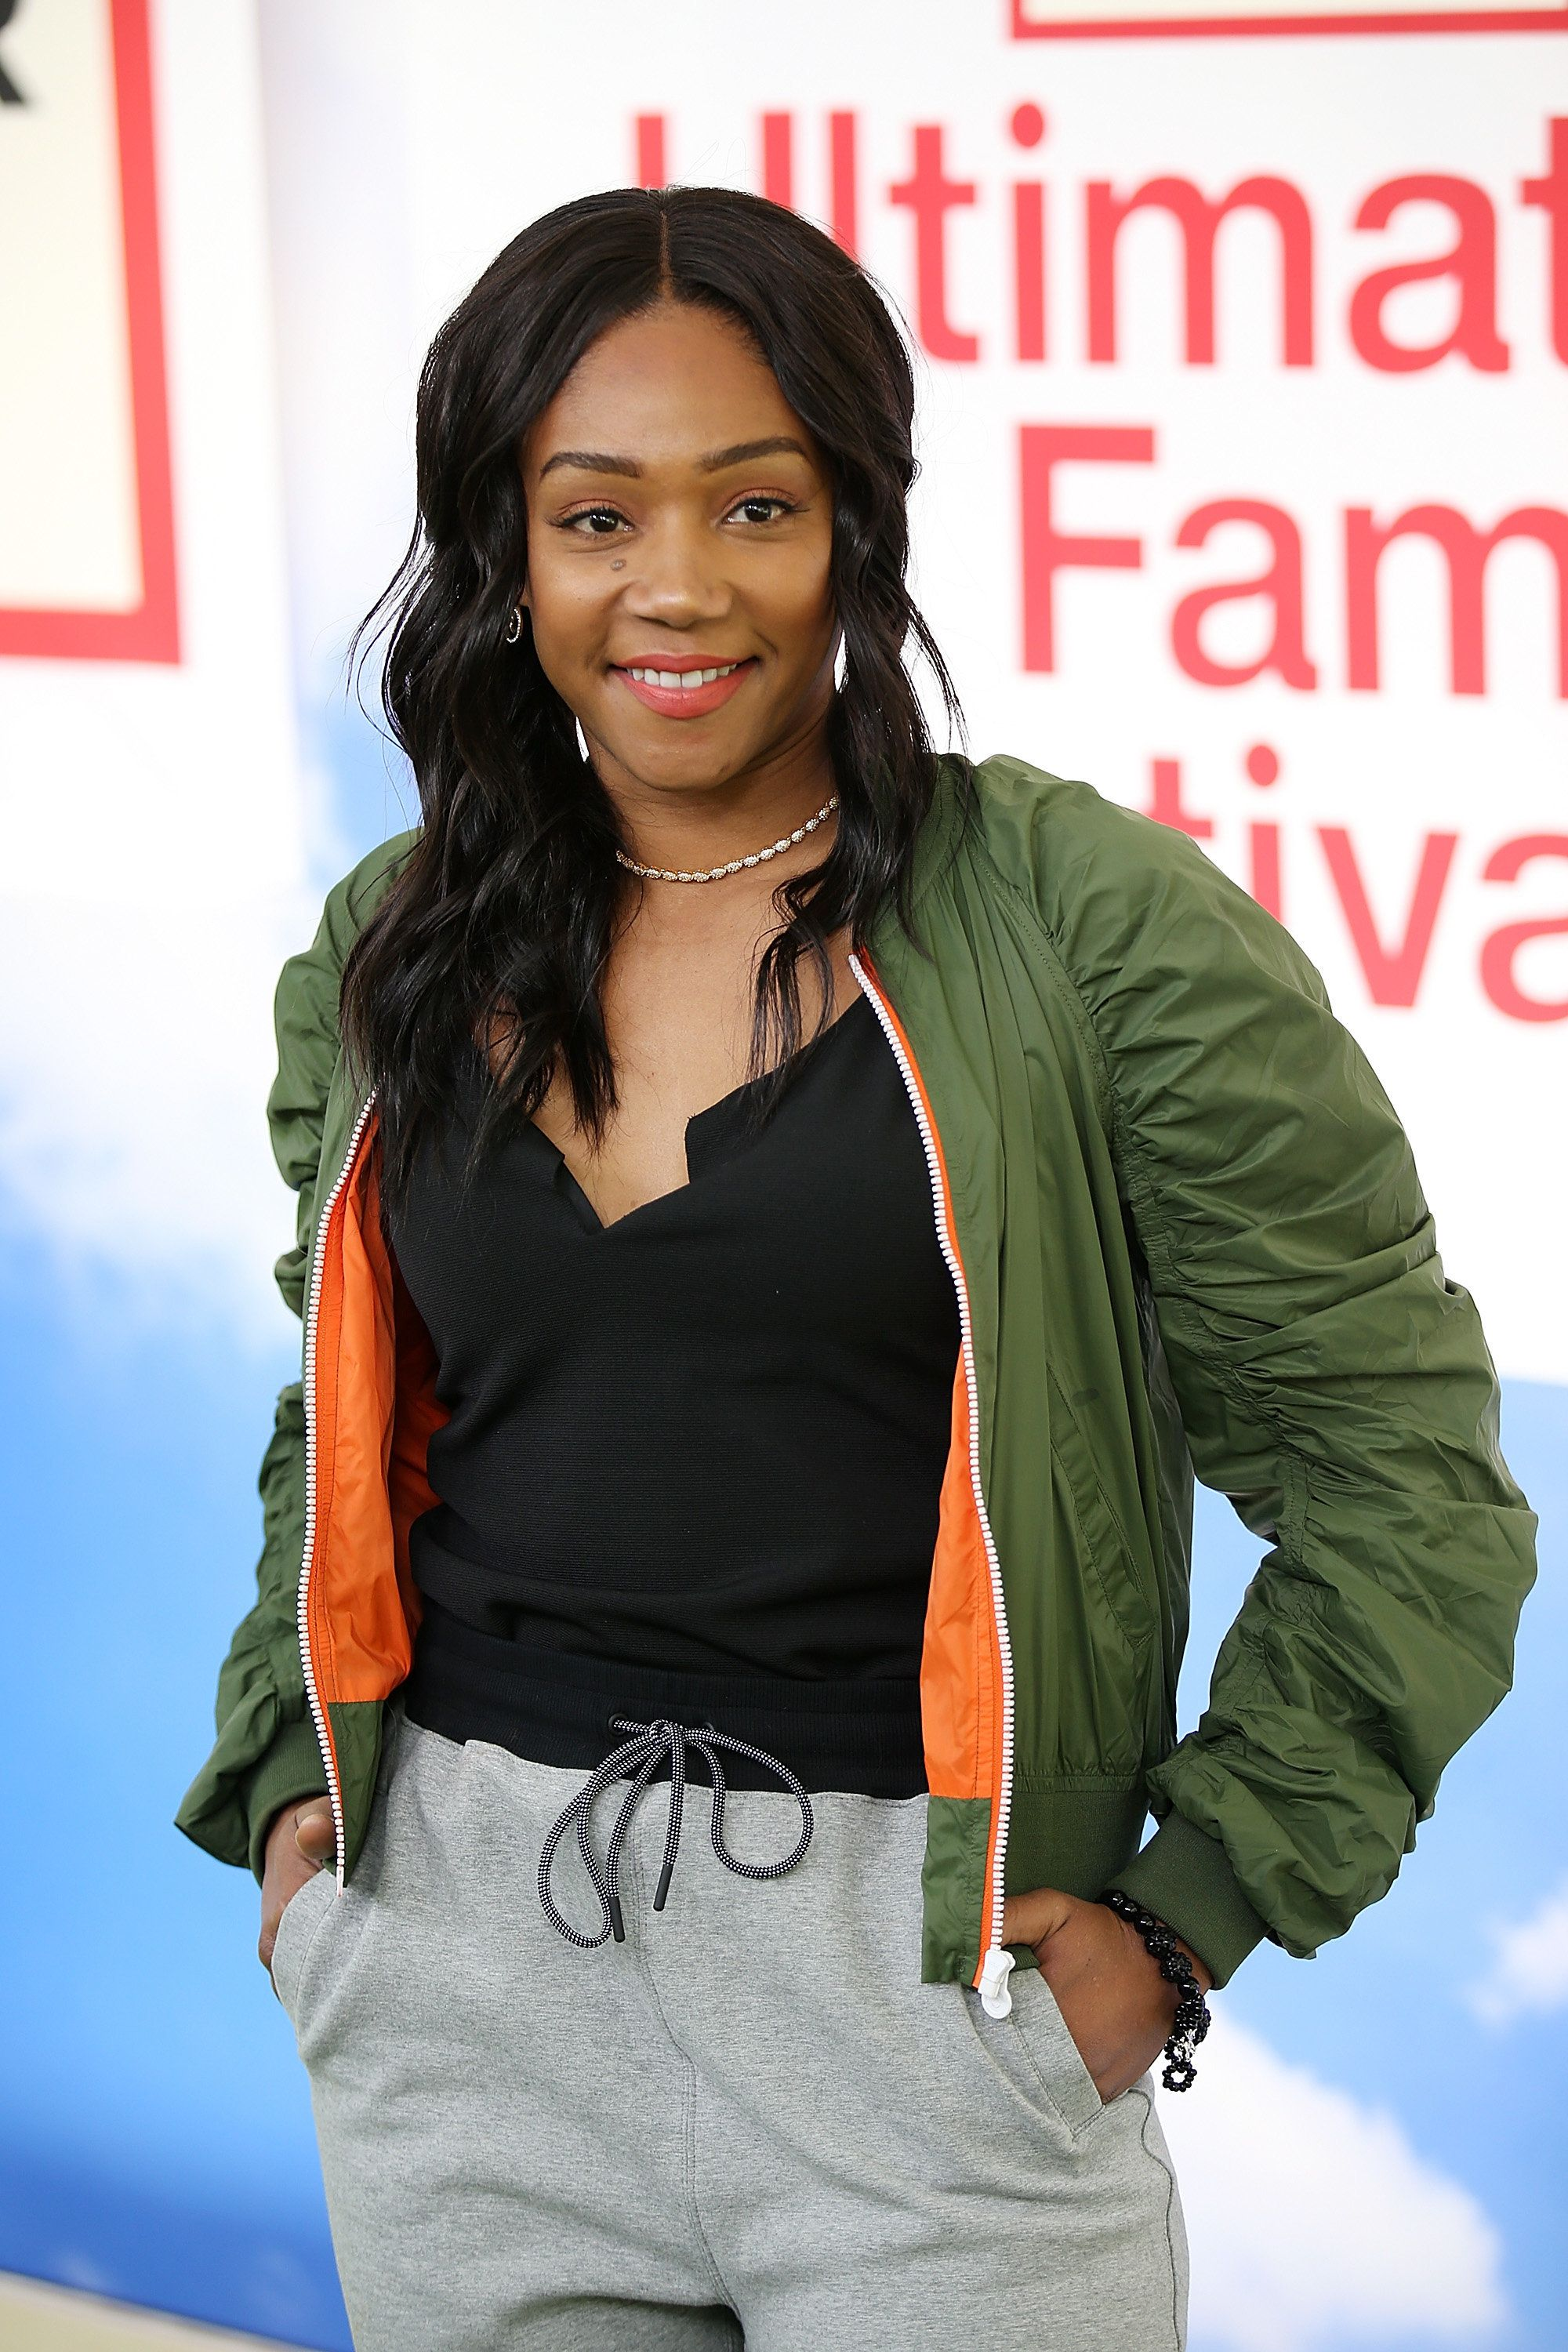 PASADENA, CA - MARCH 25:  Tiffany Haddish attends Hunter for Target Ultimate Family Festival at Rose Bowl on March 25, 2018 in Pasadena, California.  (Photo by Phillip Faraone/WireImage)